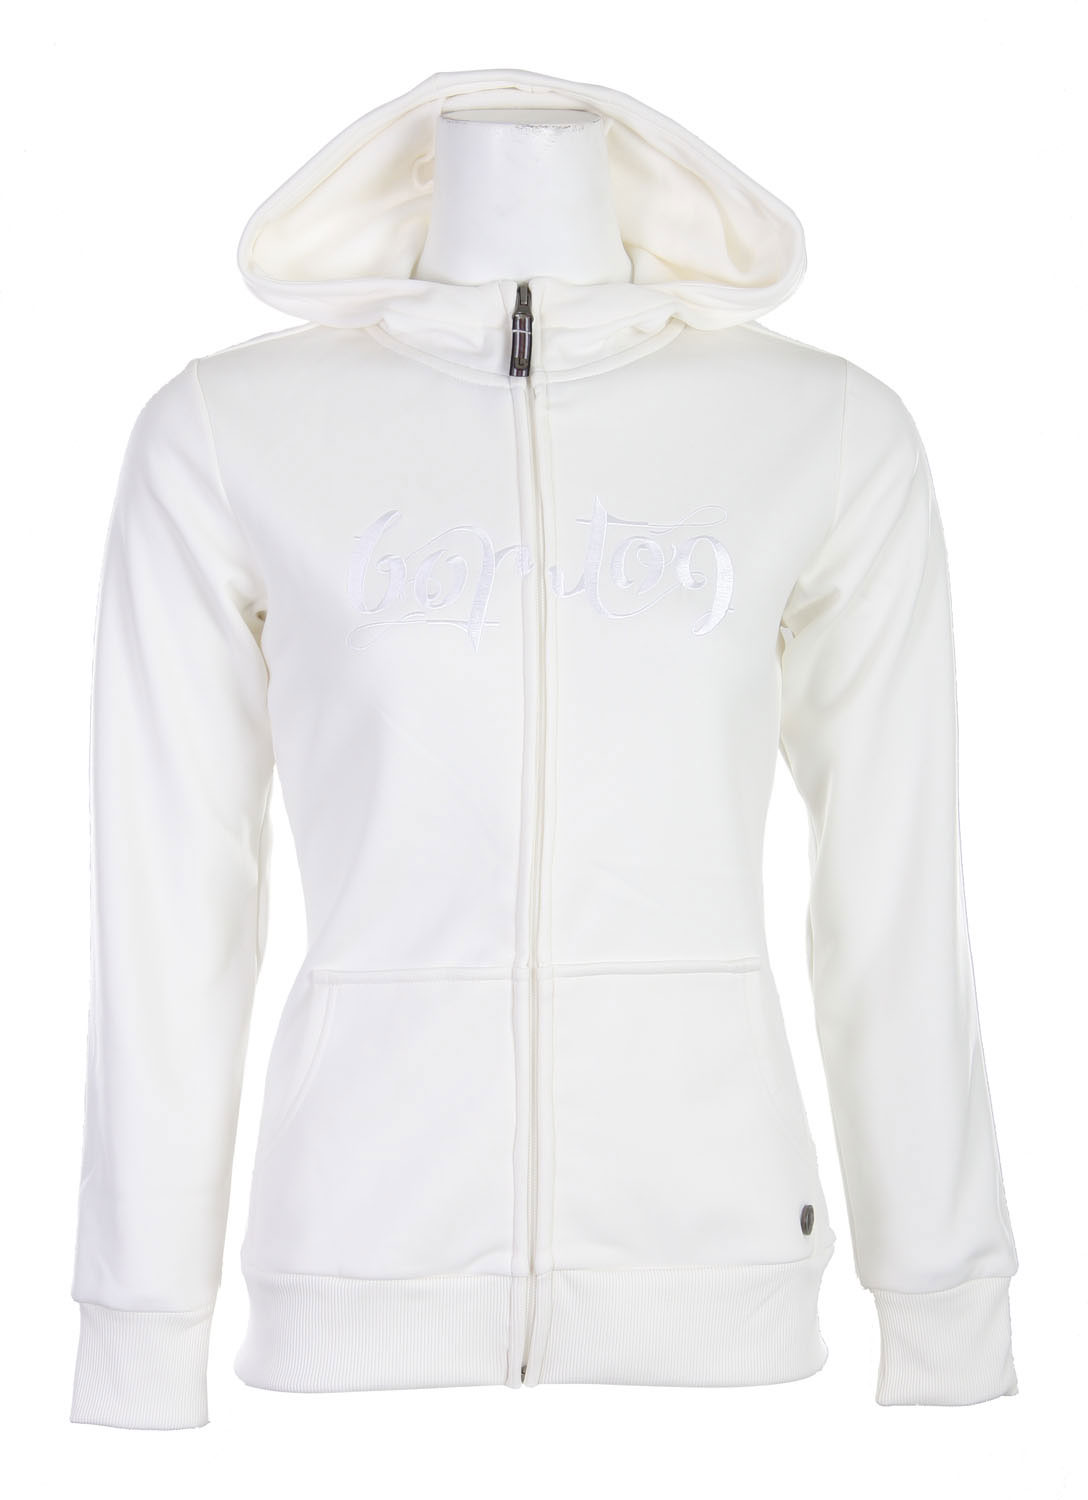 "Snowboard This slim fit women's hoodie from Burton would make an awesome addition to any wardrobe. ""Burton"" is embroidered across the chest in a neat scrawly script. Other unique details include a cool miniature watch strap inspired tab on the tag and another little logo tag on the left hip. This hoodie has got some deep pockets, they wrap around the front of your hip for maximum depth, helpful both for carting around keys and phones, and for keeping your hands warm.Key Features of The Burton Scoop Women's Hood: DryRide Thermex Fleece Fulltime Hoodie Kangaroo Handwarmer Pocket Rib Cuffs - $26.95"